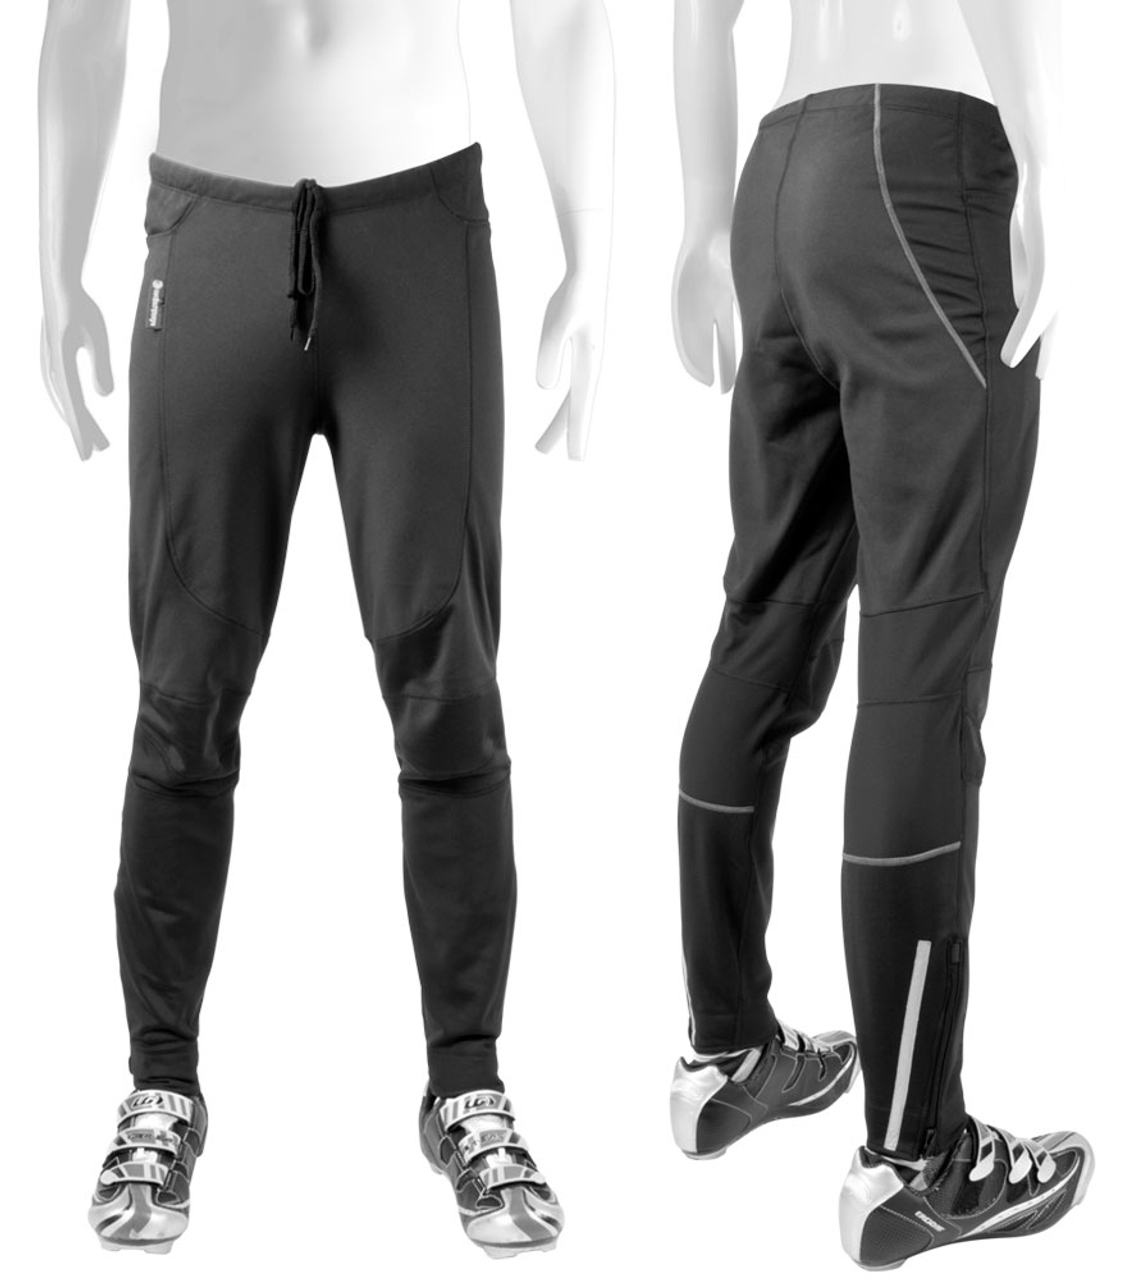 Find great deals on eBay for mens cold weather running pants. Shop with confidence.